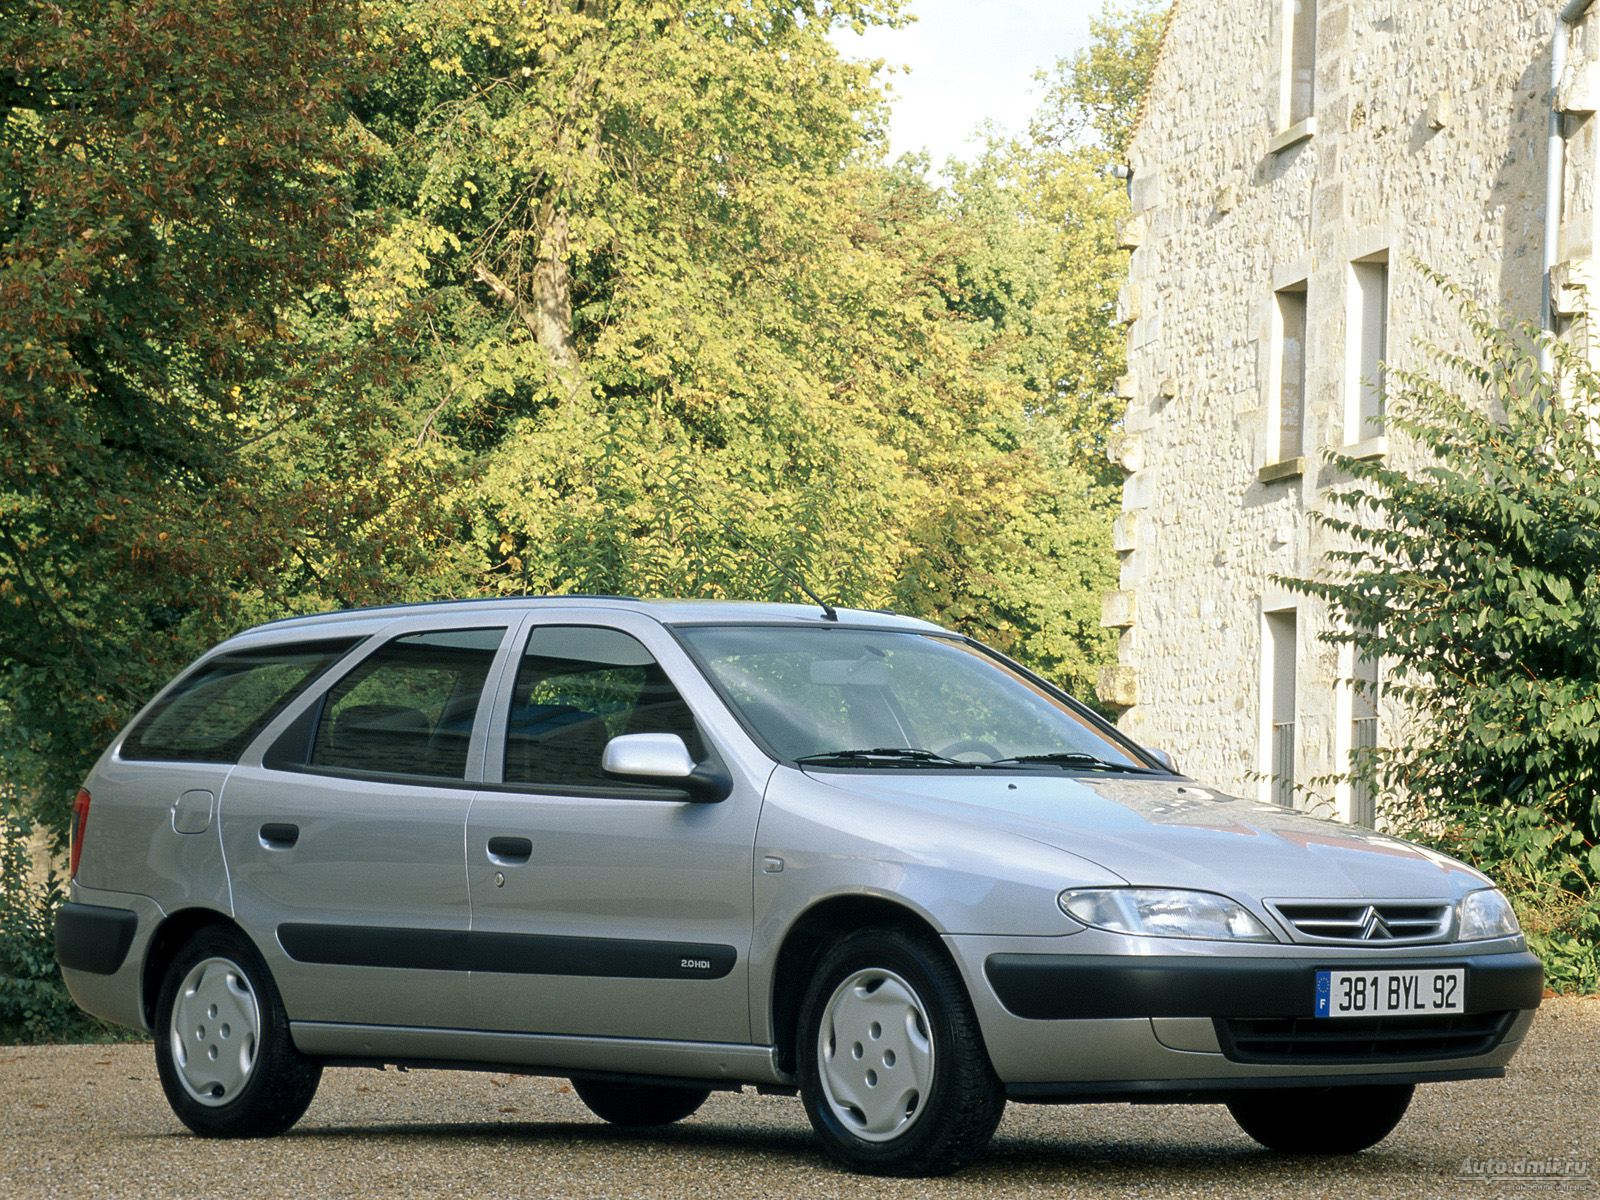 2001 citroen xsara break n2 pictures information and. Black Bedroom Furniture Sets. Home Design Ideas